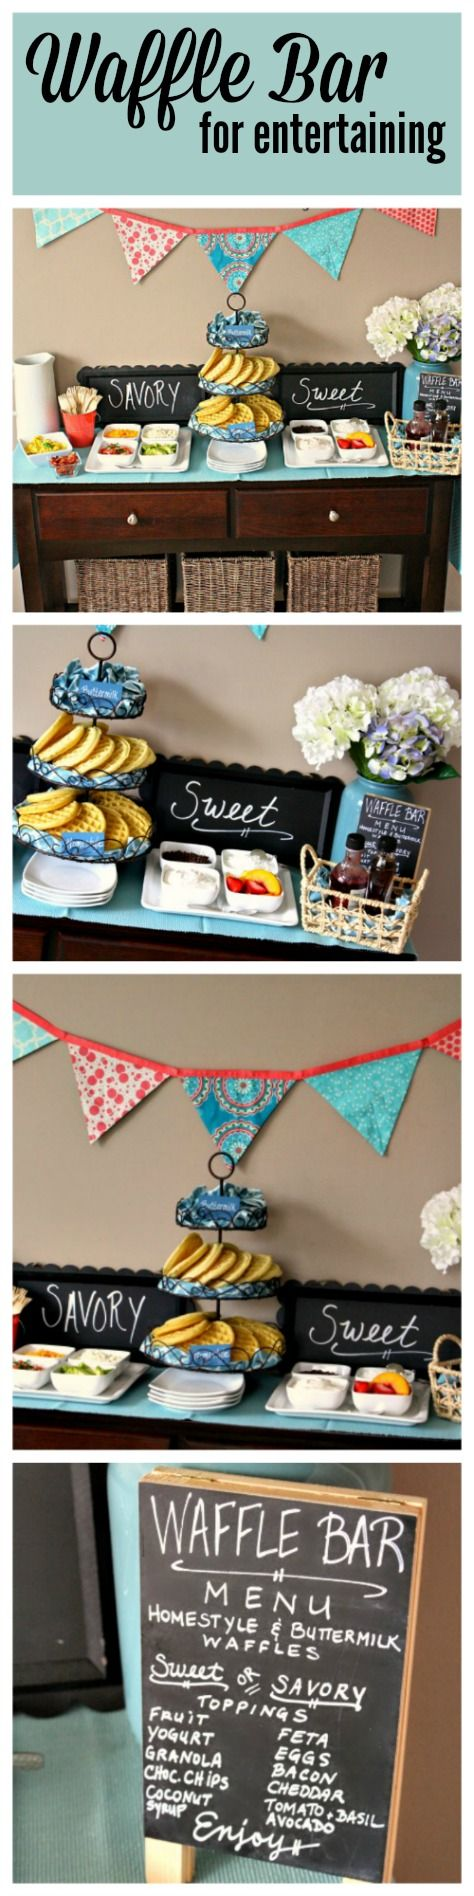 Easy Waffle Bar Setup - with fresh colors for spring! #EggoWaffleBar #ad #CollectiveBias @Walmart